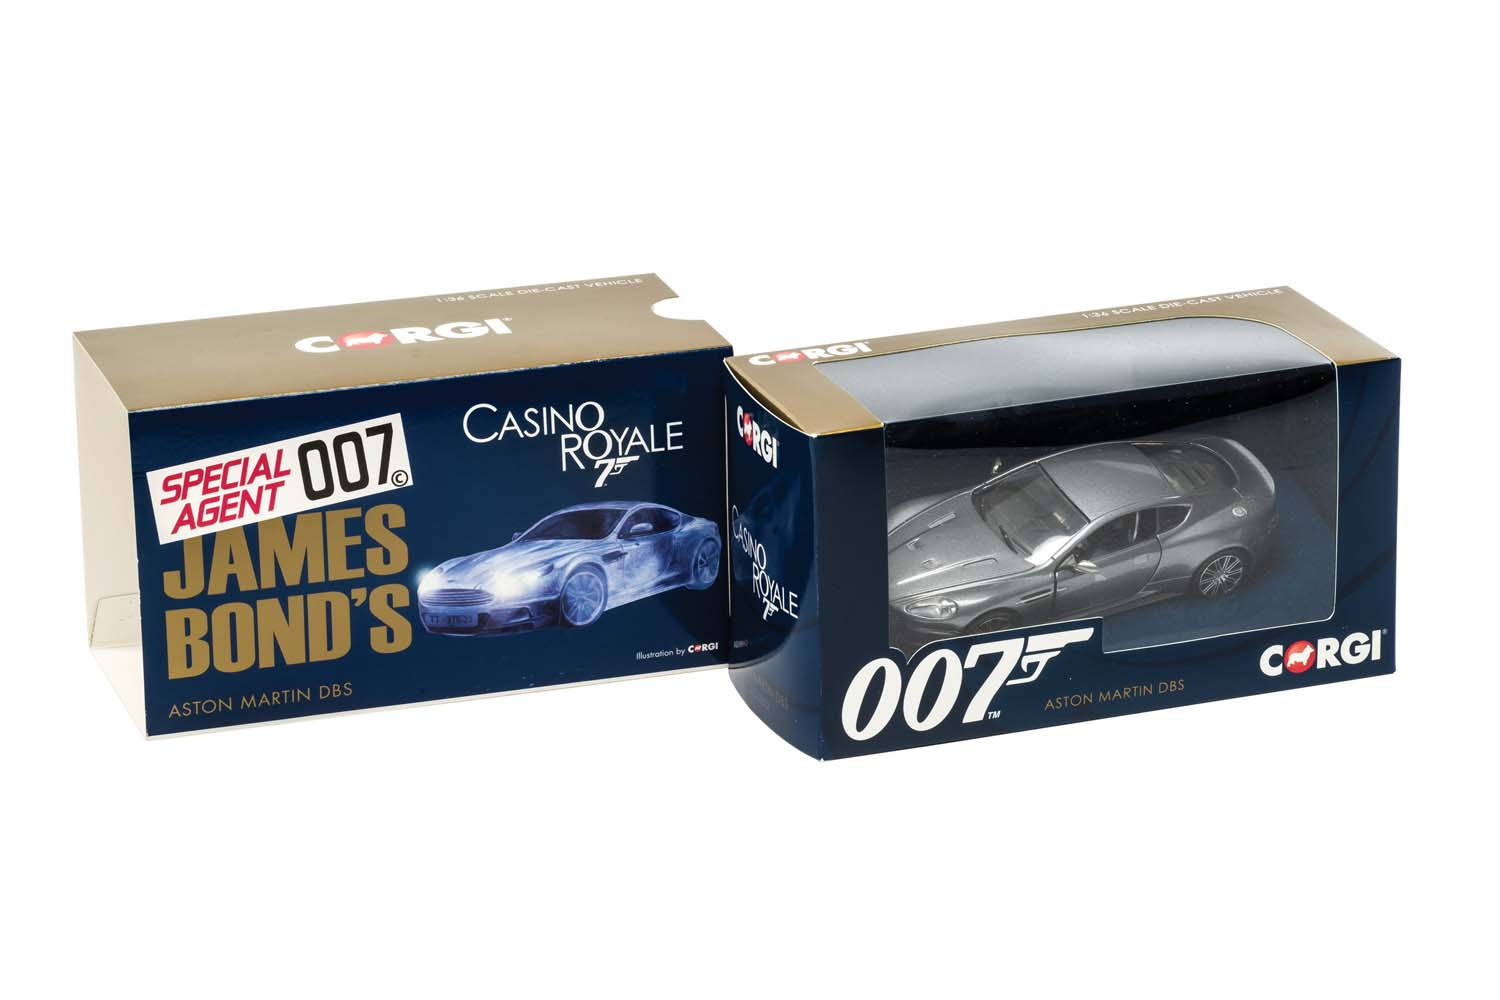 007 James Bond - Aston Martin Dbs - Casino Royale In Scala 1:36 Die-Cast